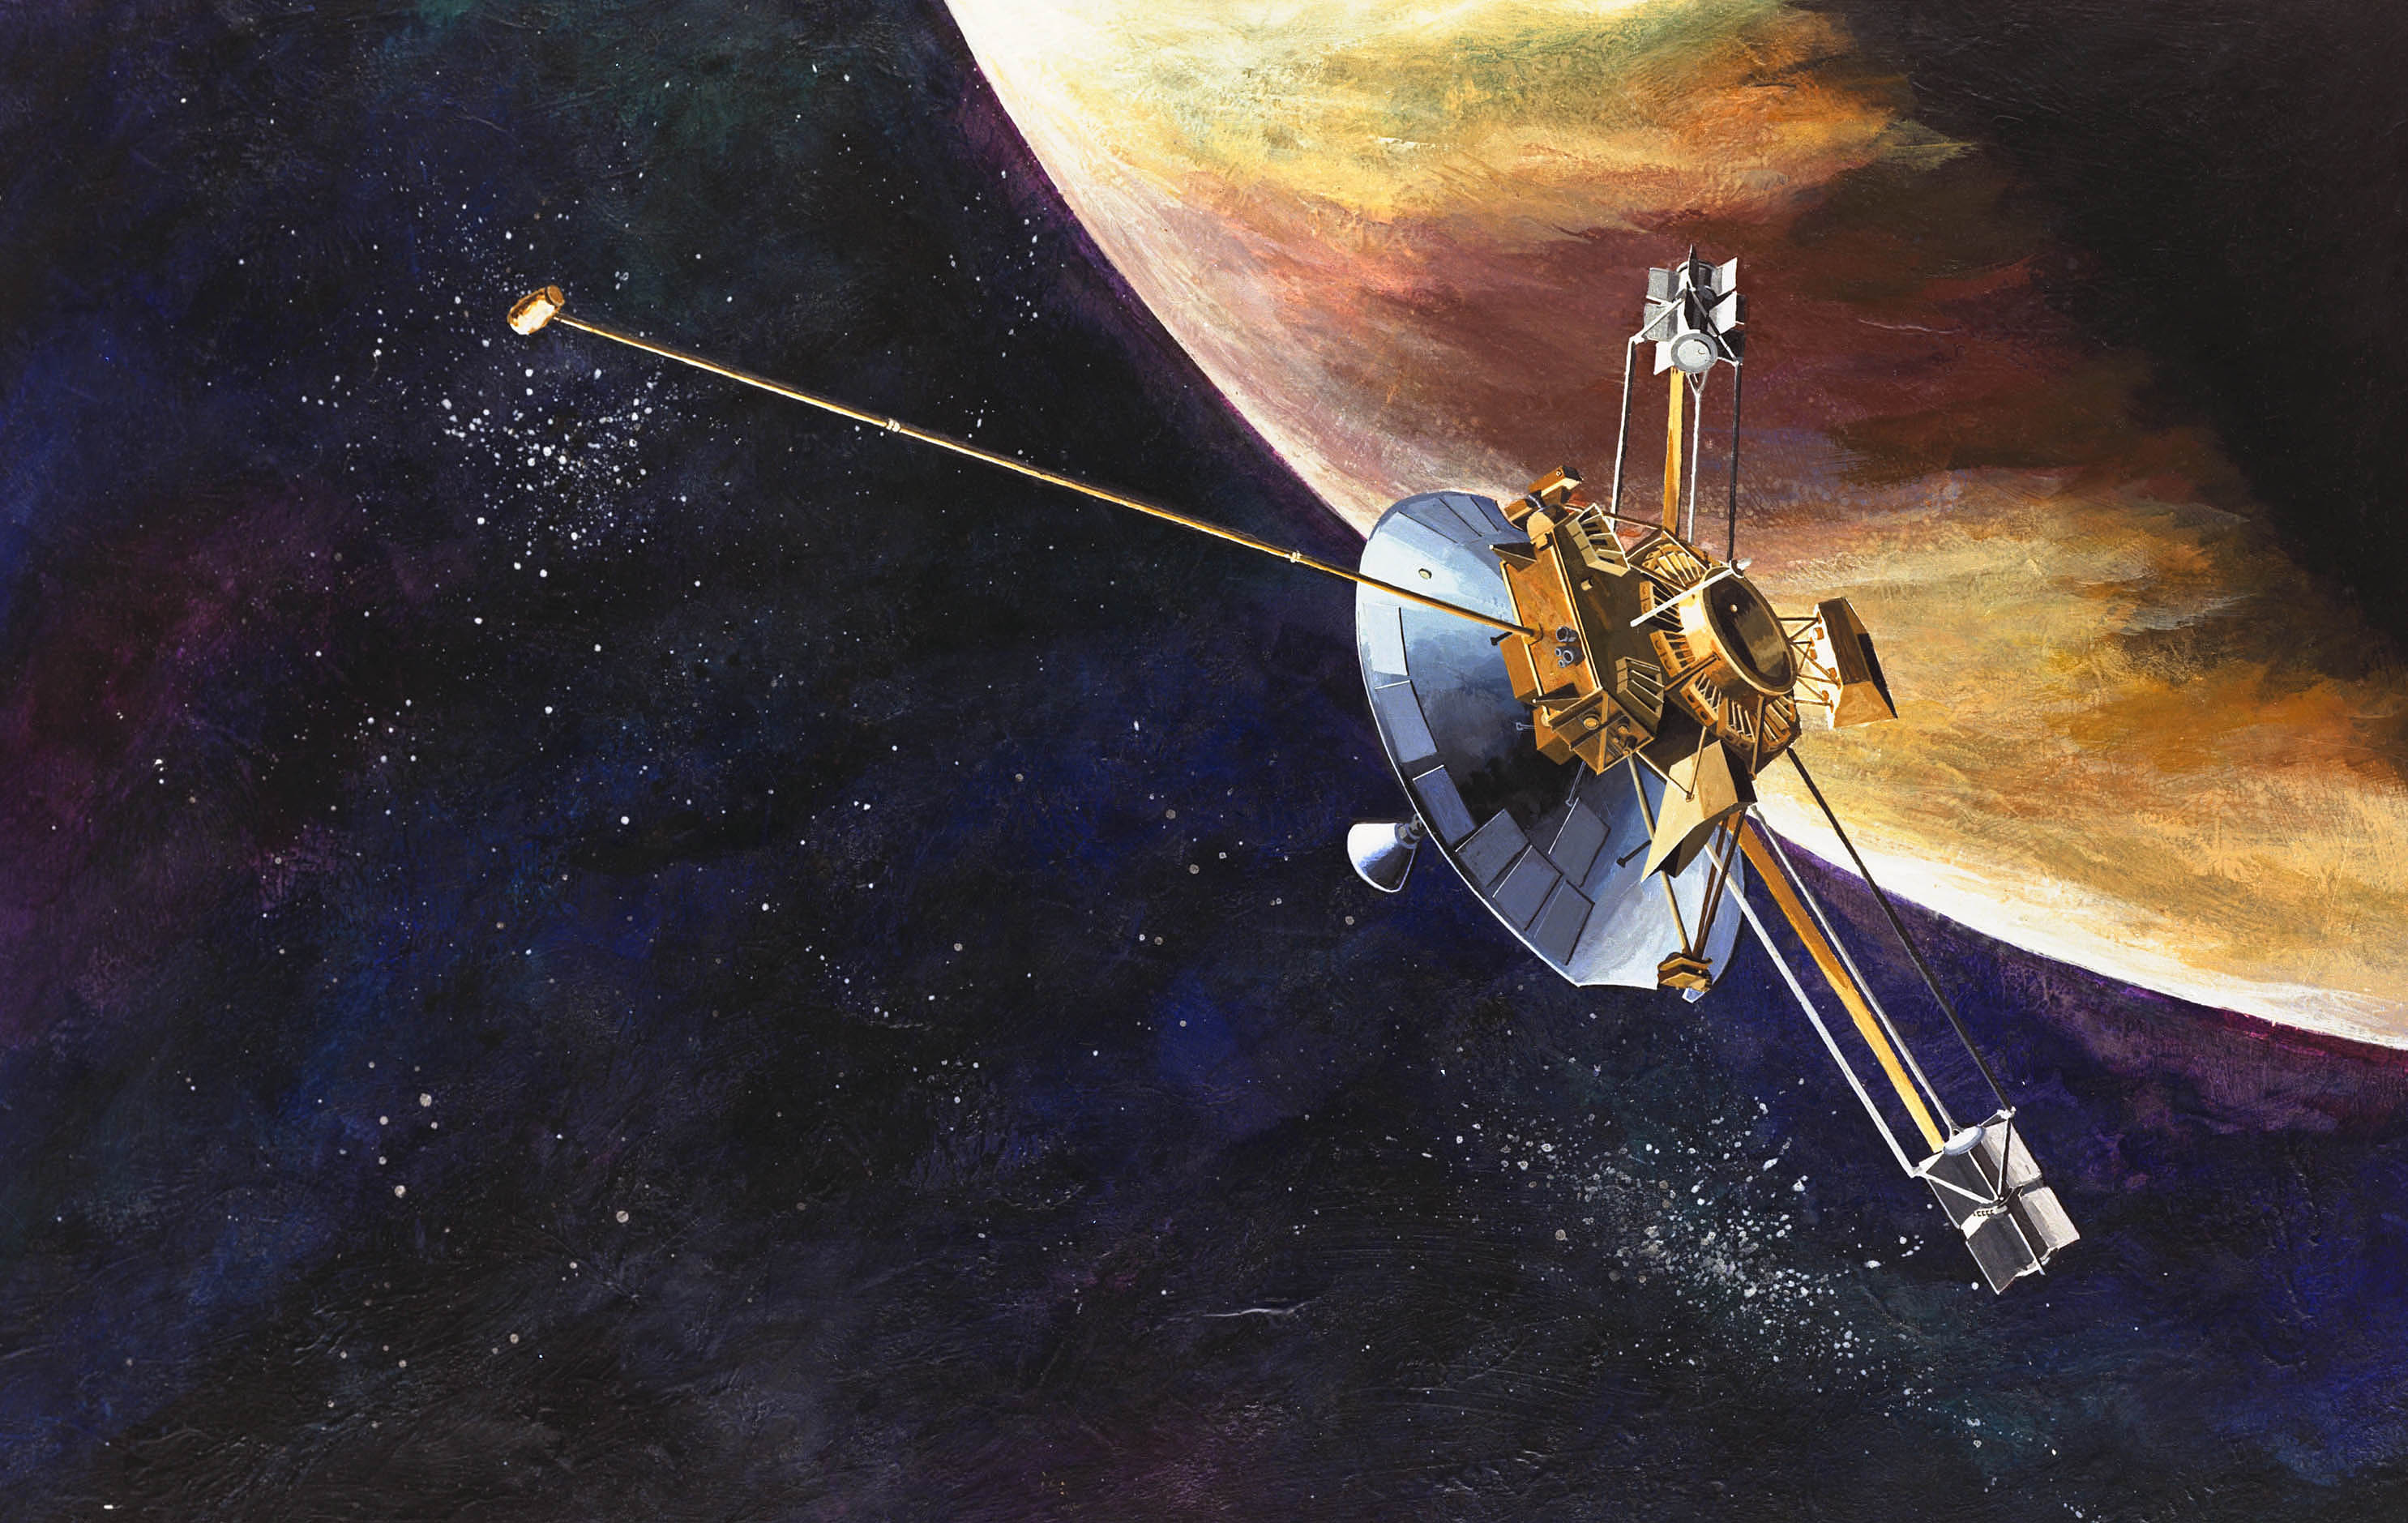 An Artist's Concept Of The Pioneer 10 Spacecraft